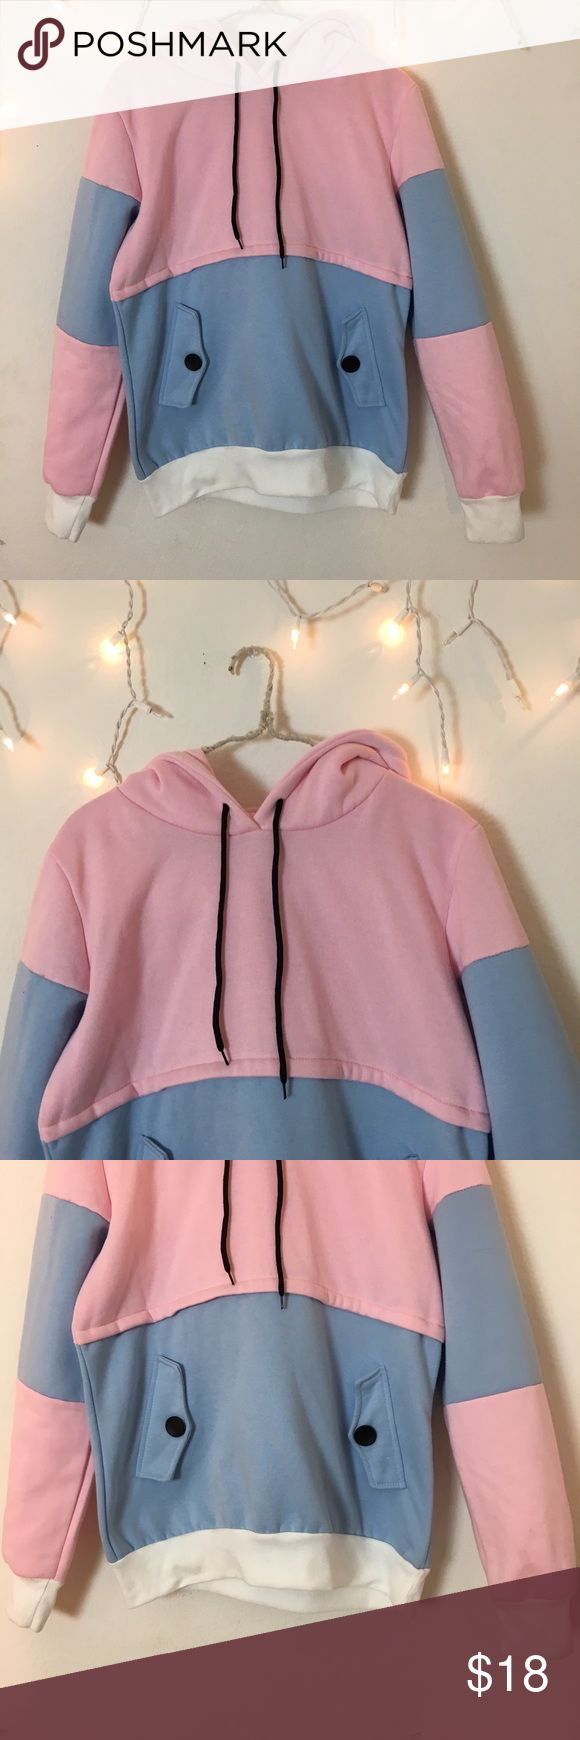 Pastel Dreams Hoodie Super soft and comfortable pastel pink blue and white hoodie with black statement buttons. For a size small or medium for that cute oversize look! Brand-new out of the package never worn. NOT UNIF UNIF Tops Sweatshirts & Hoodies